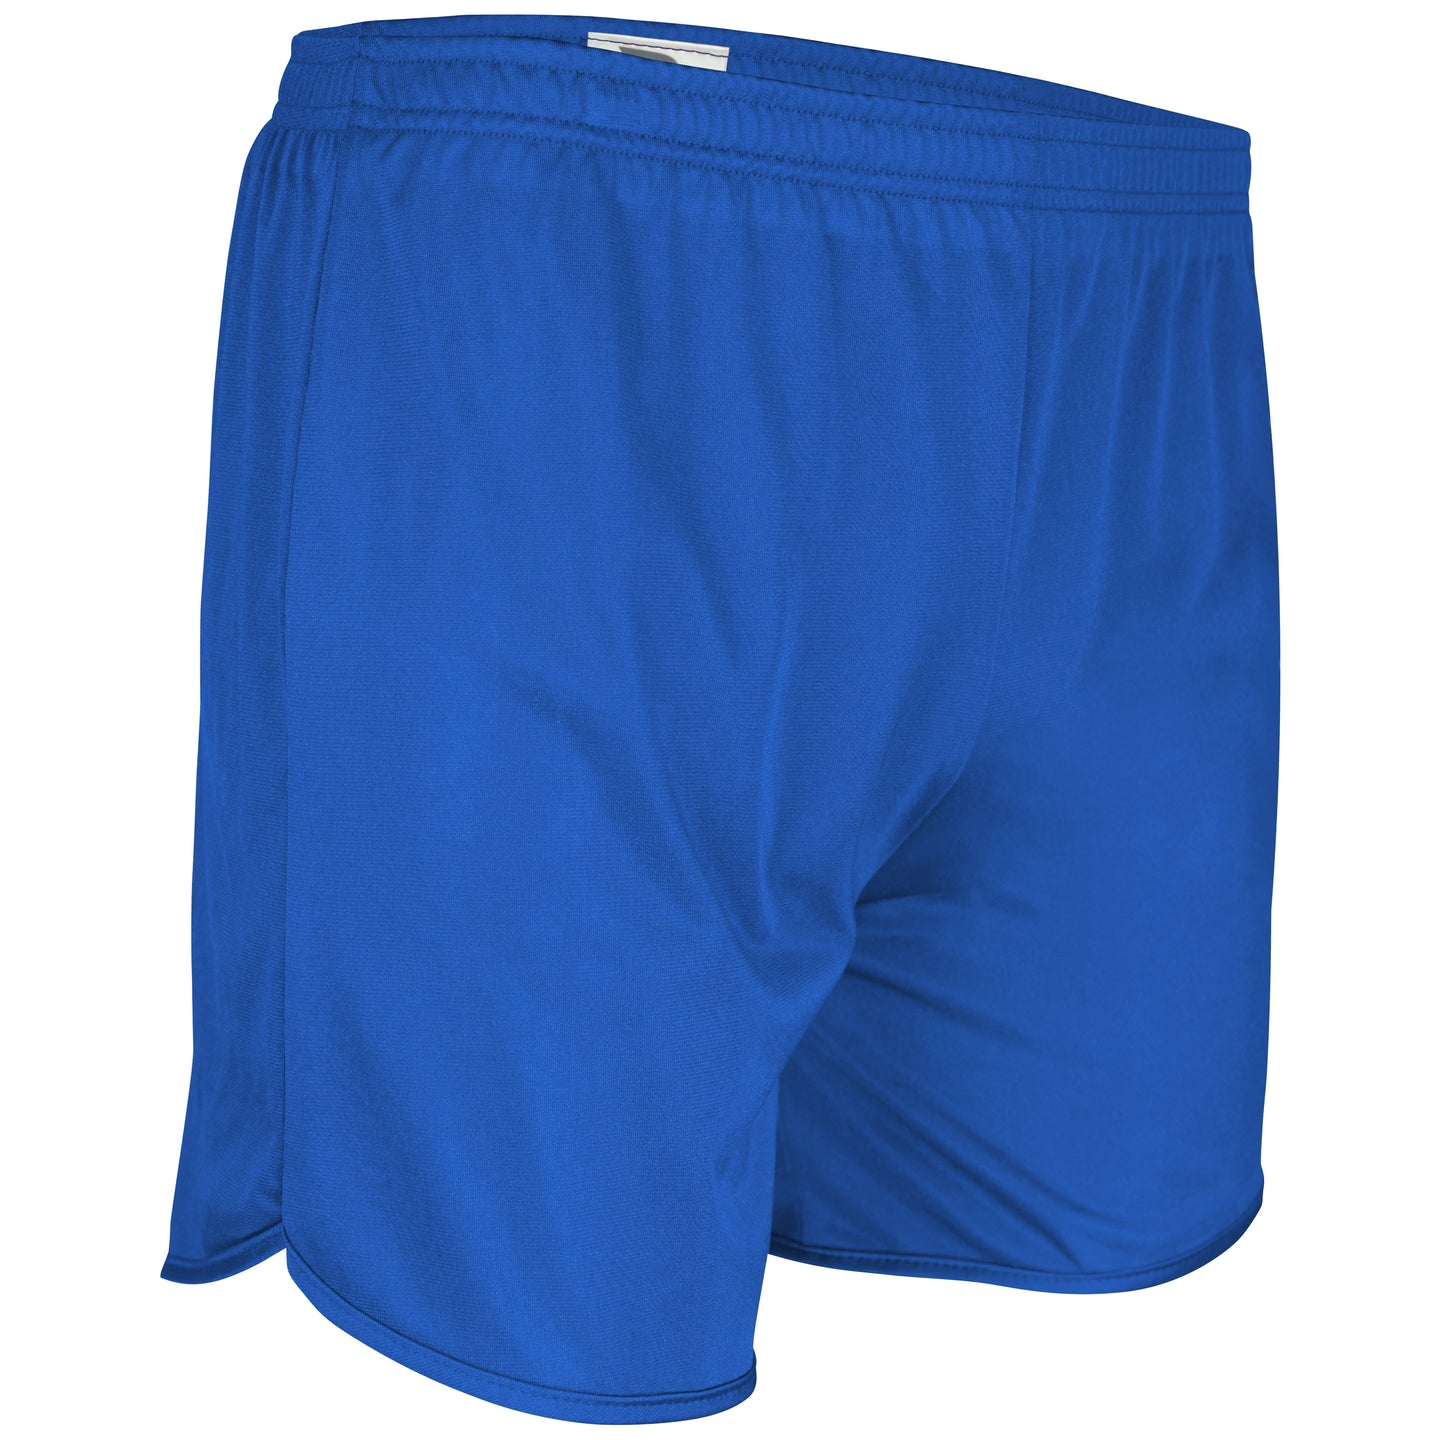 TR-403-CB Men's Tricot Solid Running Short w/ Trim (White, Black, Red, Royal, Navy)